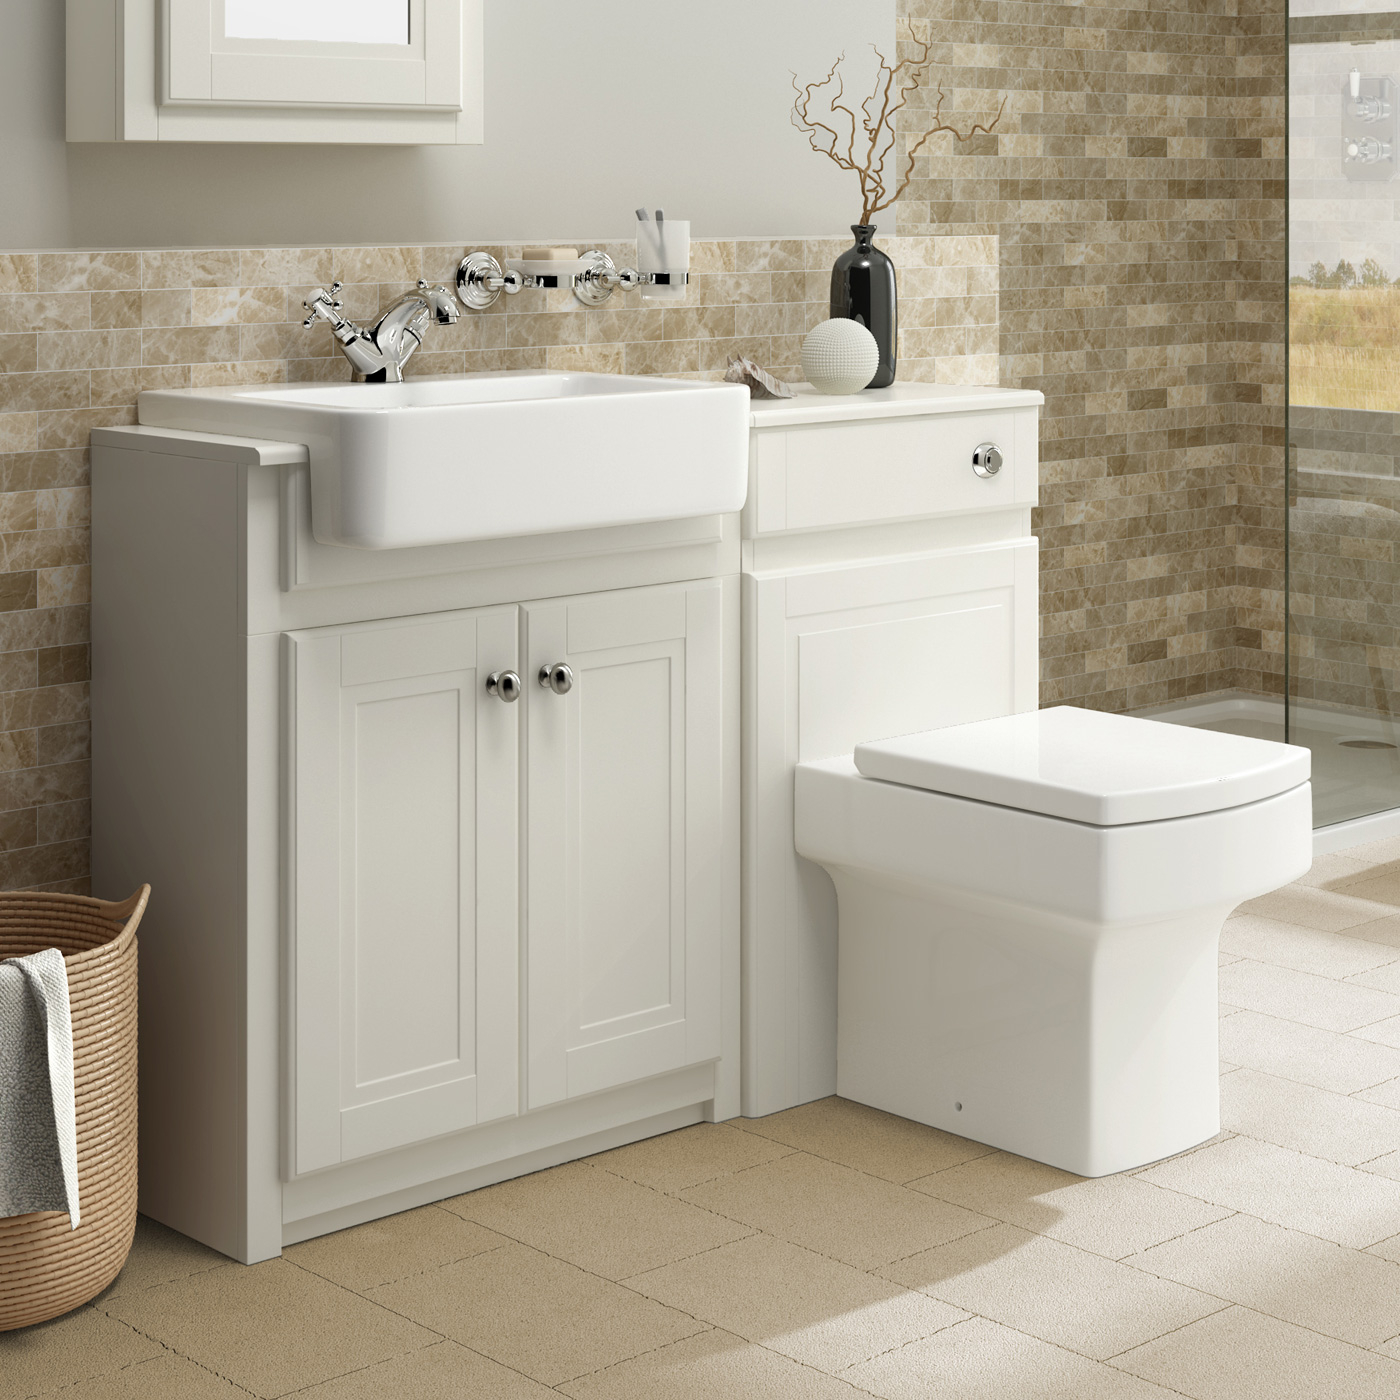 Clotted Cream Bathroom Mirror Storage Vanity Units With Basin throughout proportions 1400 X 1400